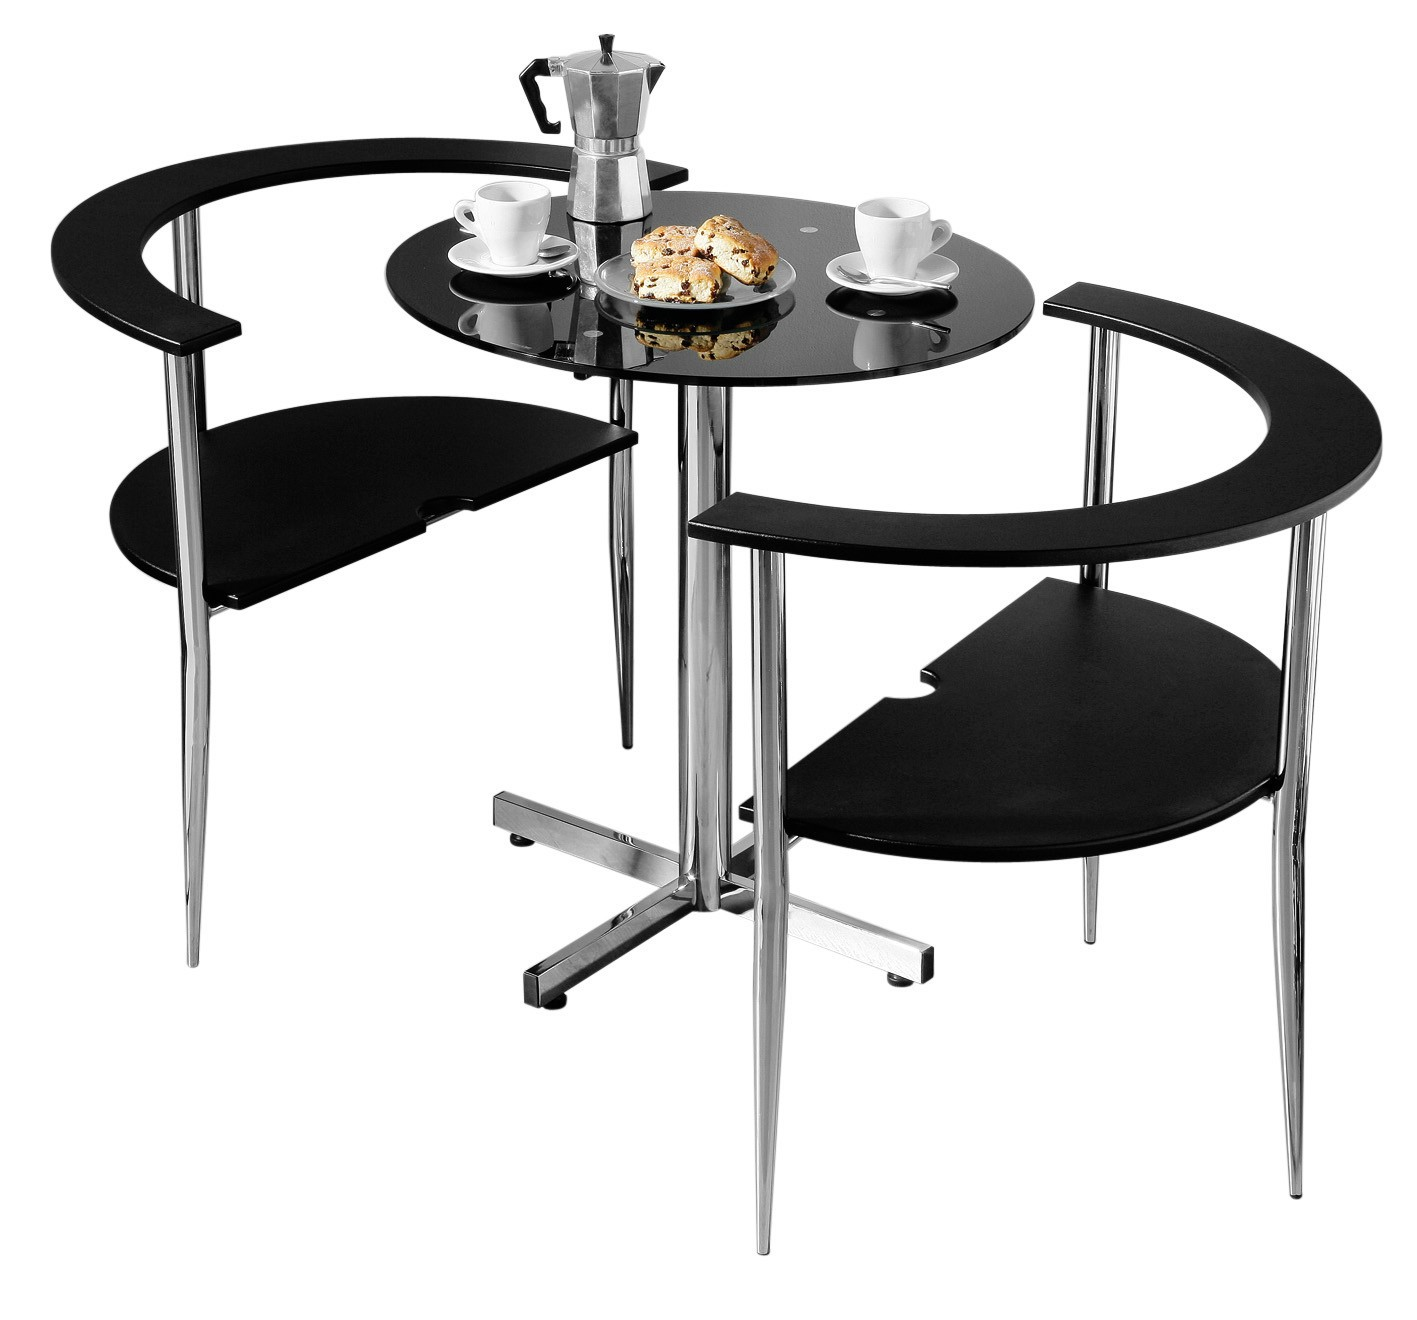 Love Dining Set, Black Tempered Glass Table Top, Chrome Frame